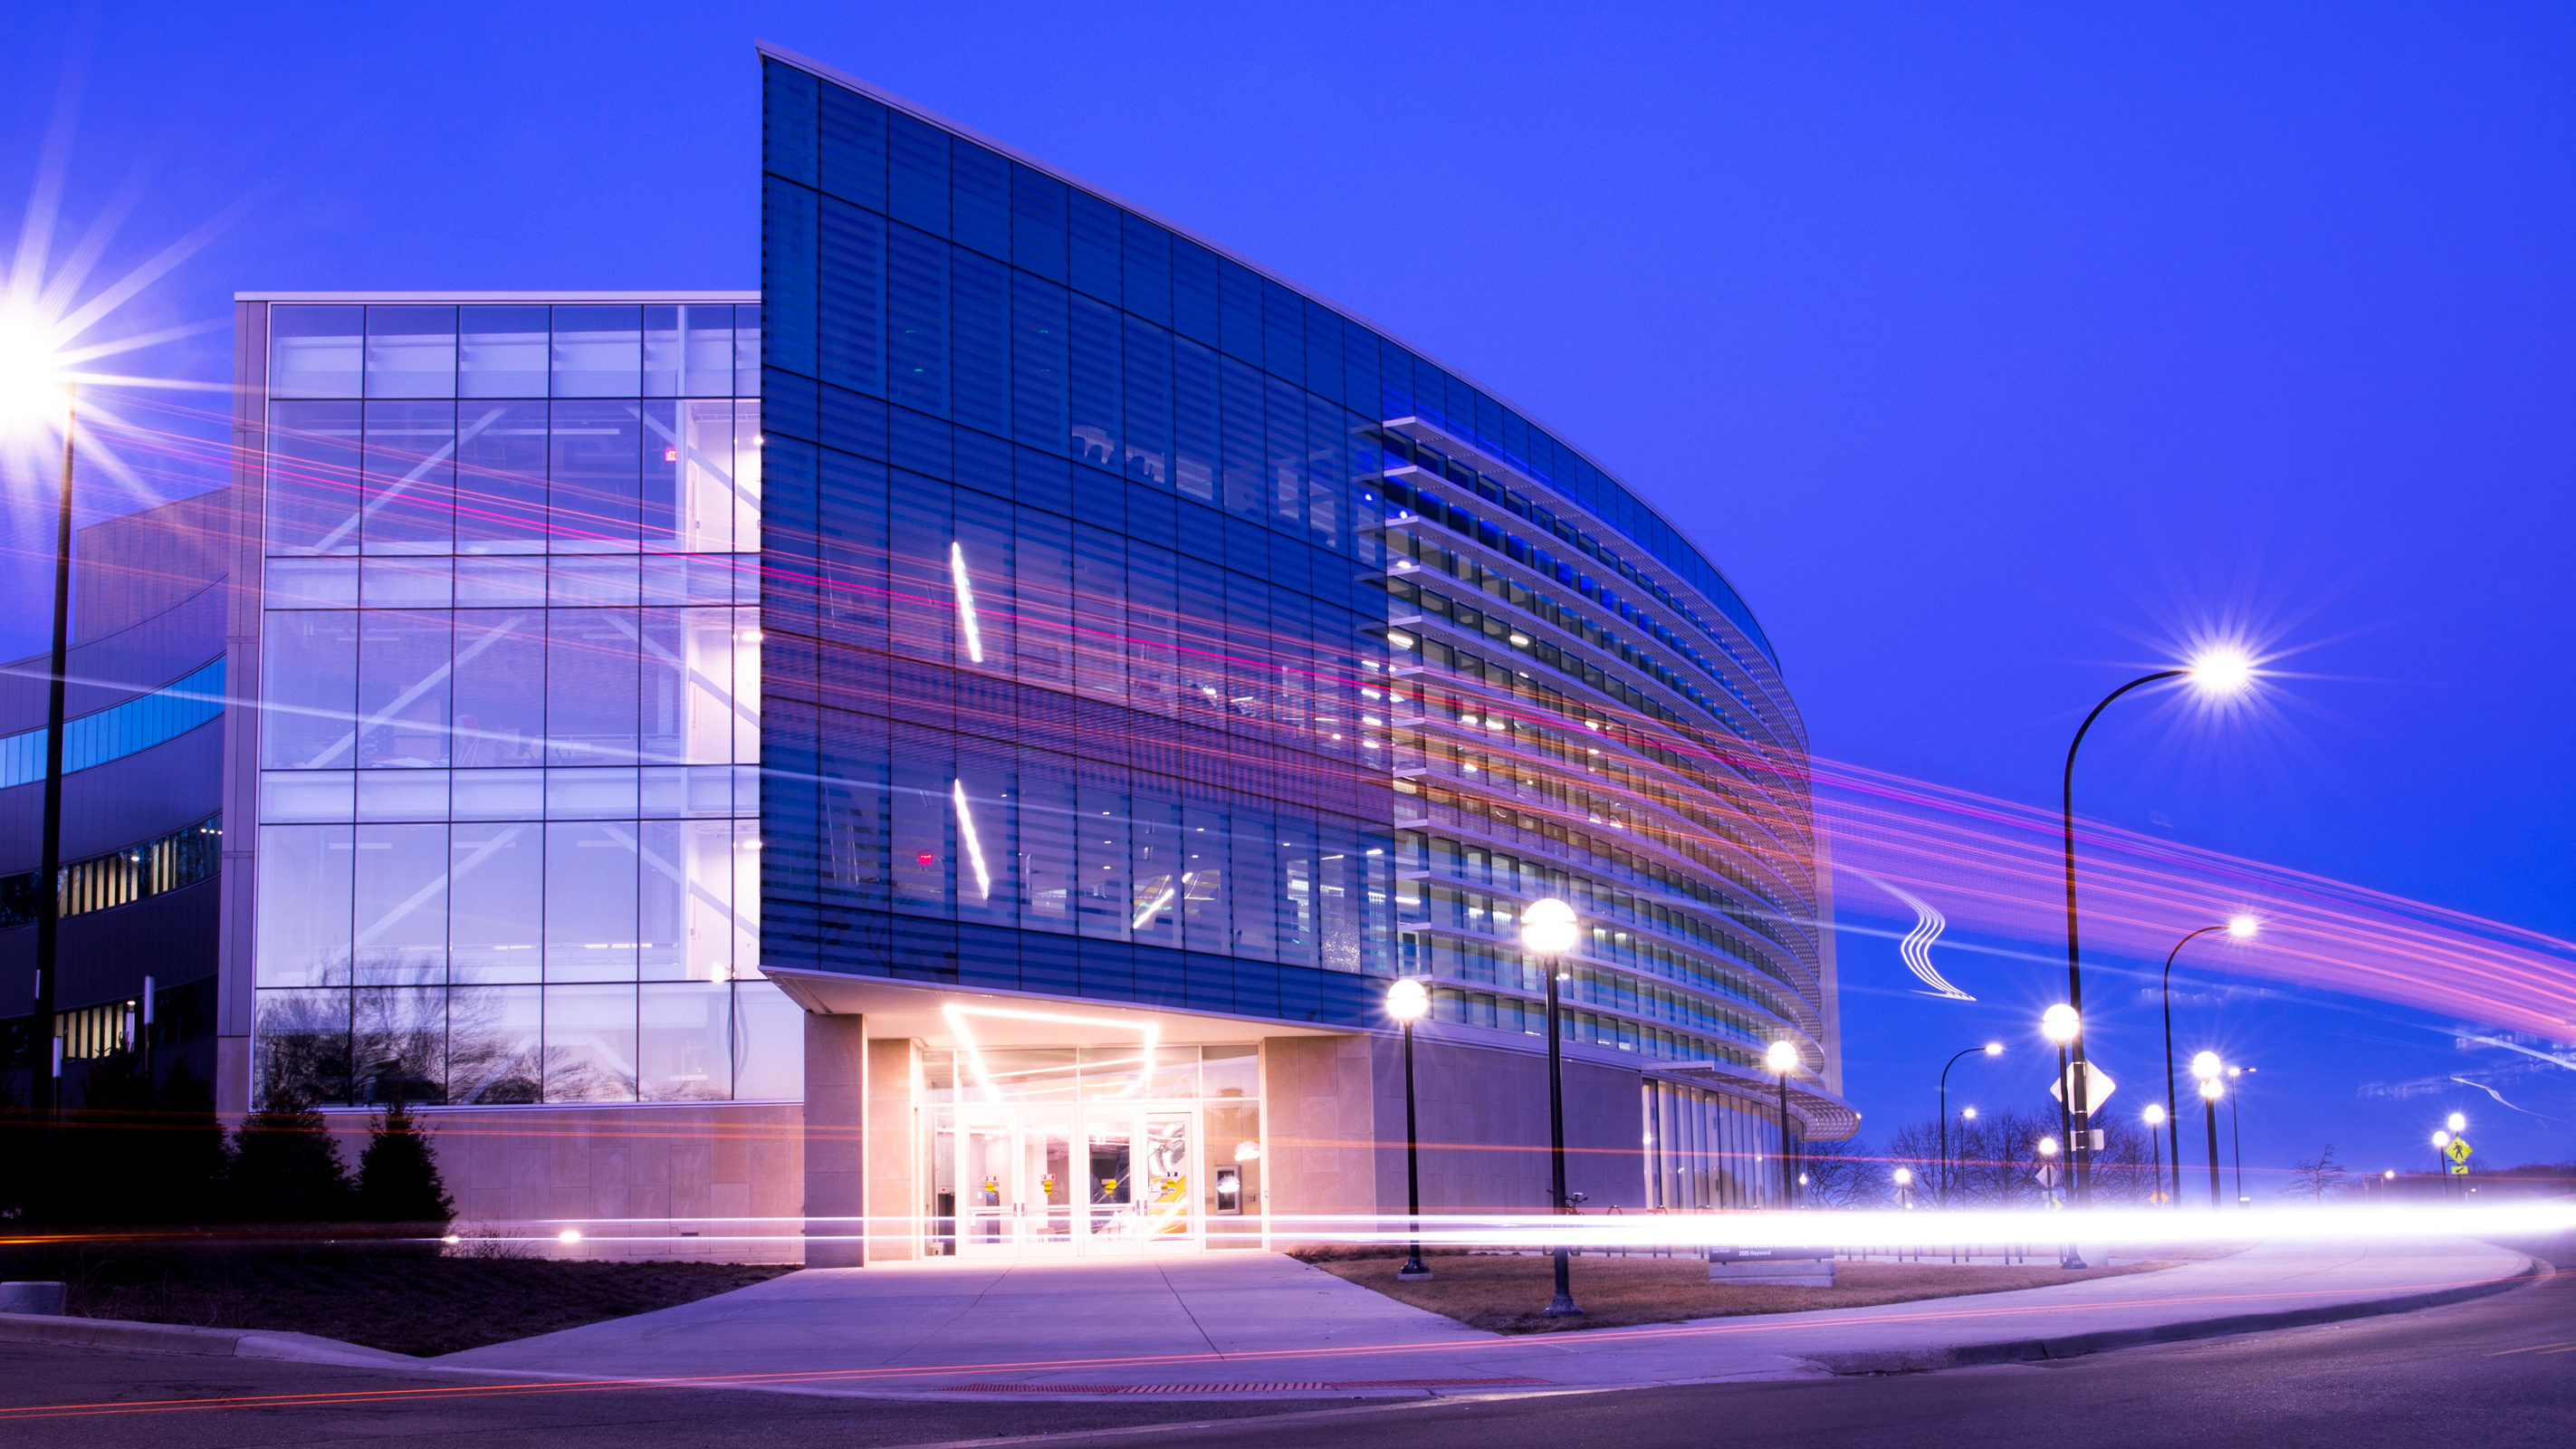 The outside of the Ford Robotics building